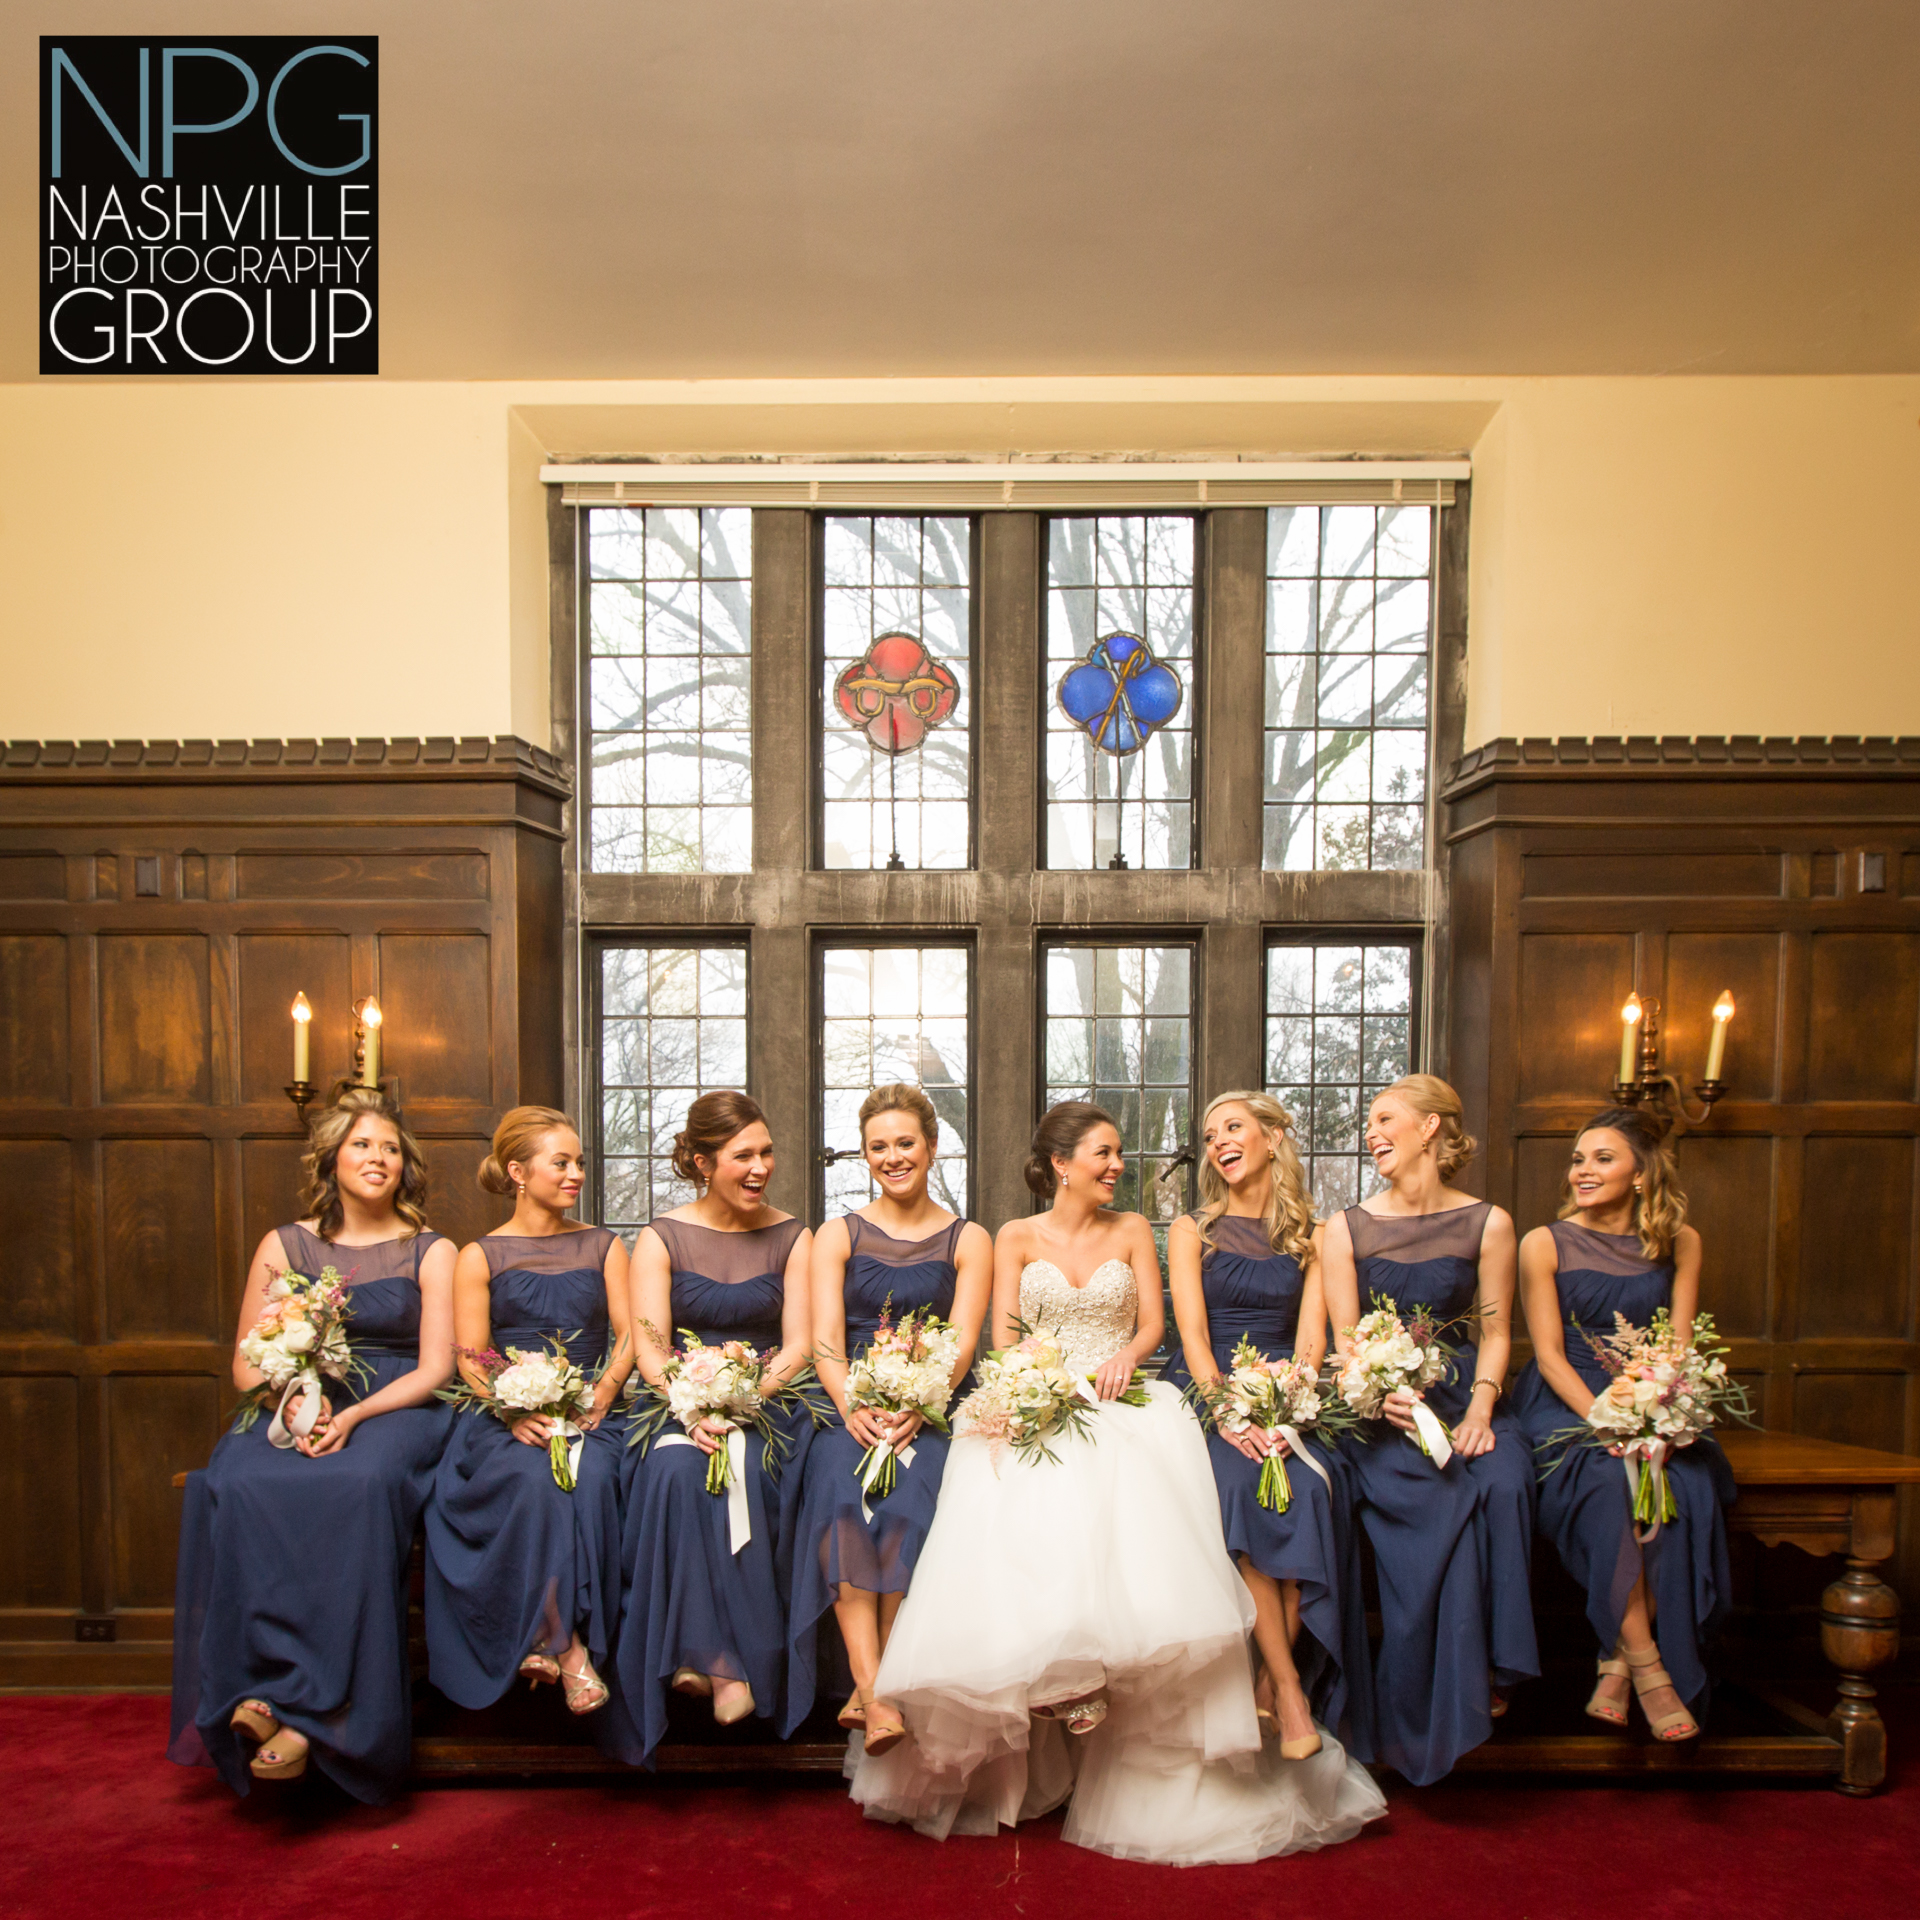 nashville wedding photographer - nashville photography group (4 of 11).jpg